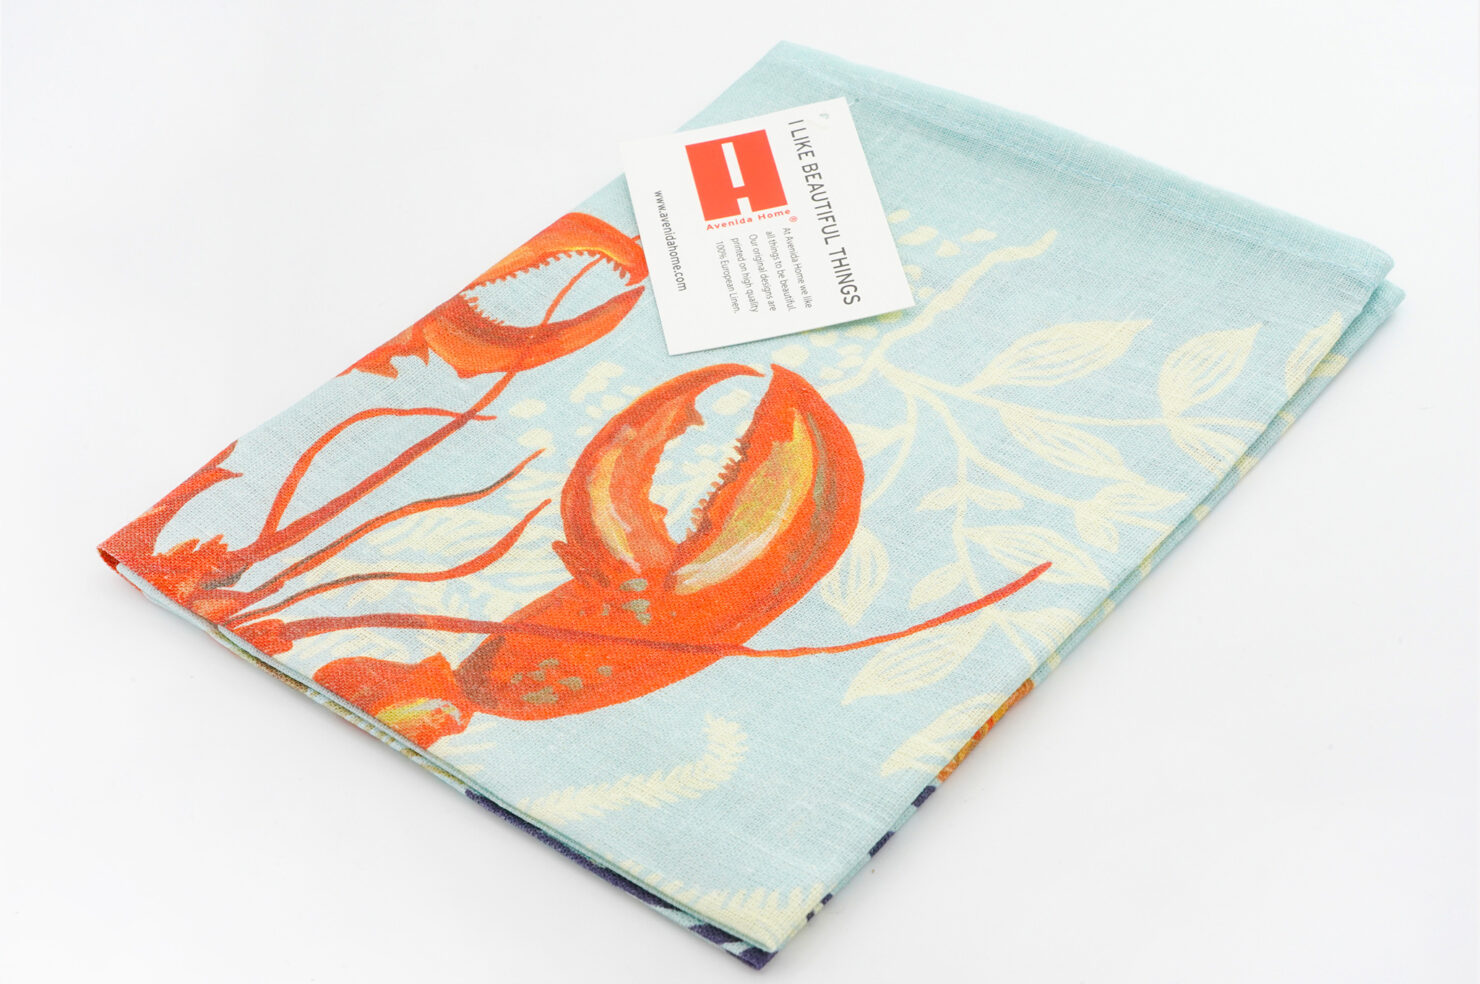 LOBSTER TEA TOWEL TABLE LINENS BY NATHALIE LETE 70x50 cm - AVENIDA HOME